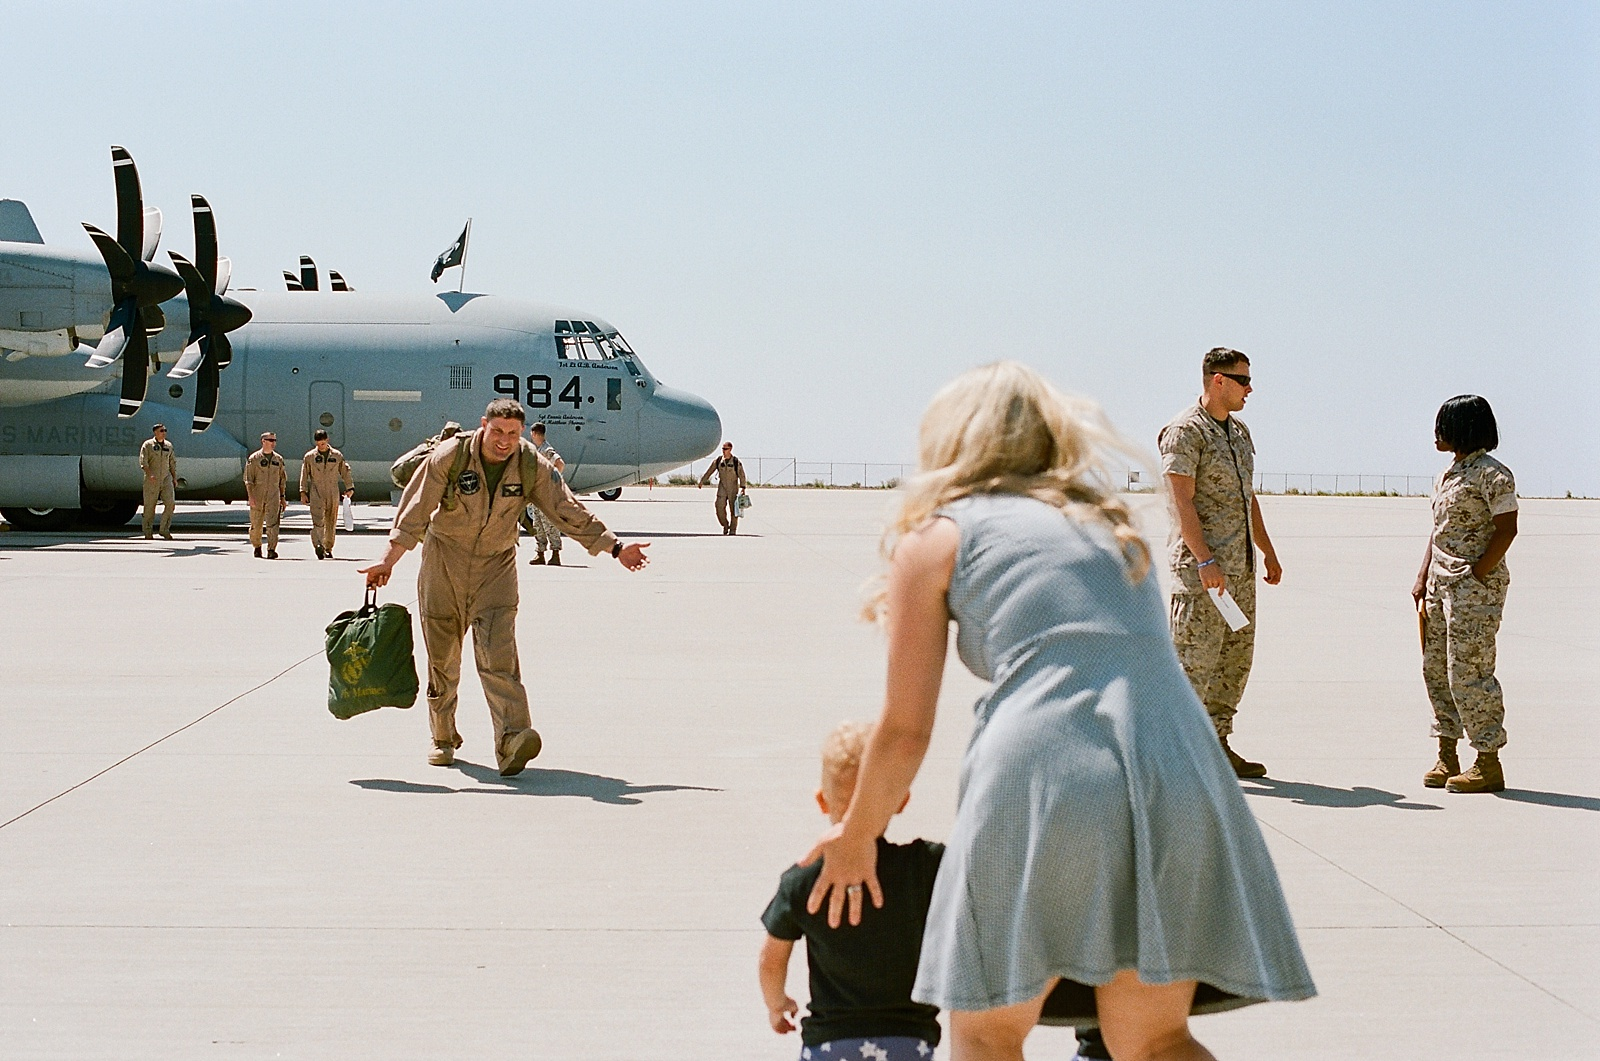 Marine Corps C130 Homecoming at MCAS Miramar from San Diego military homecoming photographer Lauren Nygard